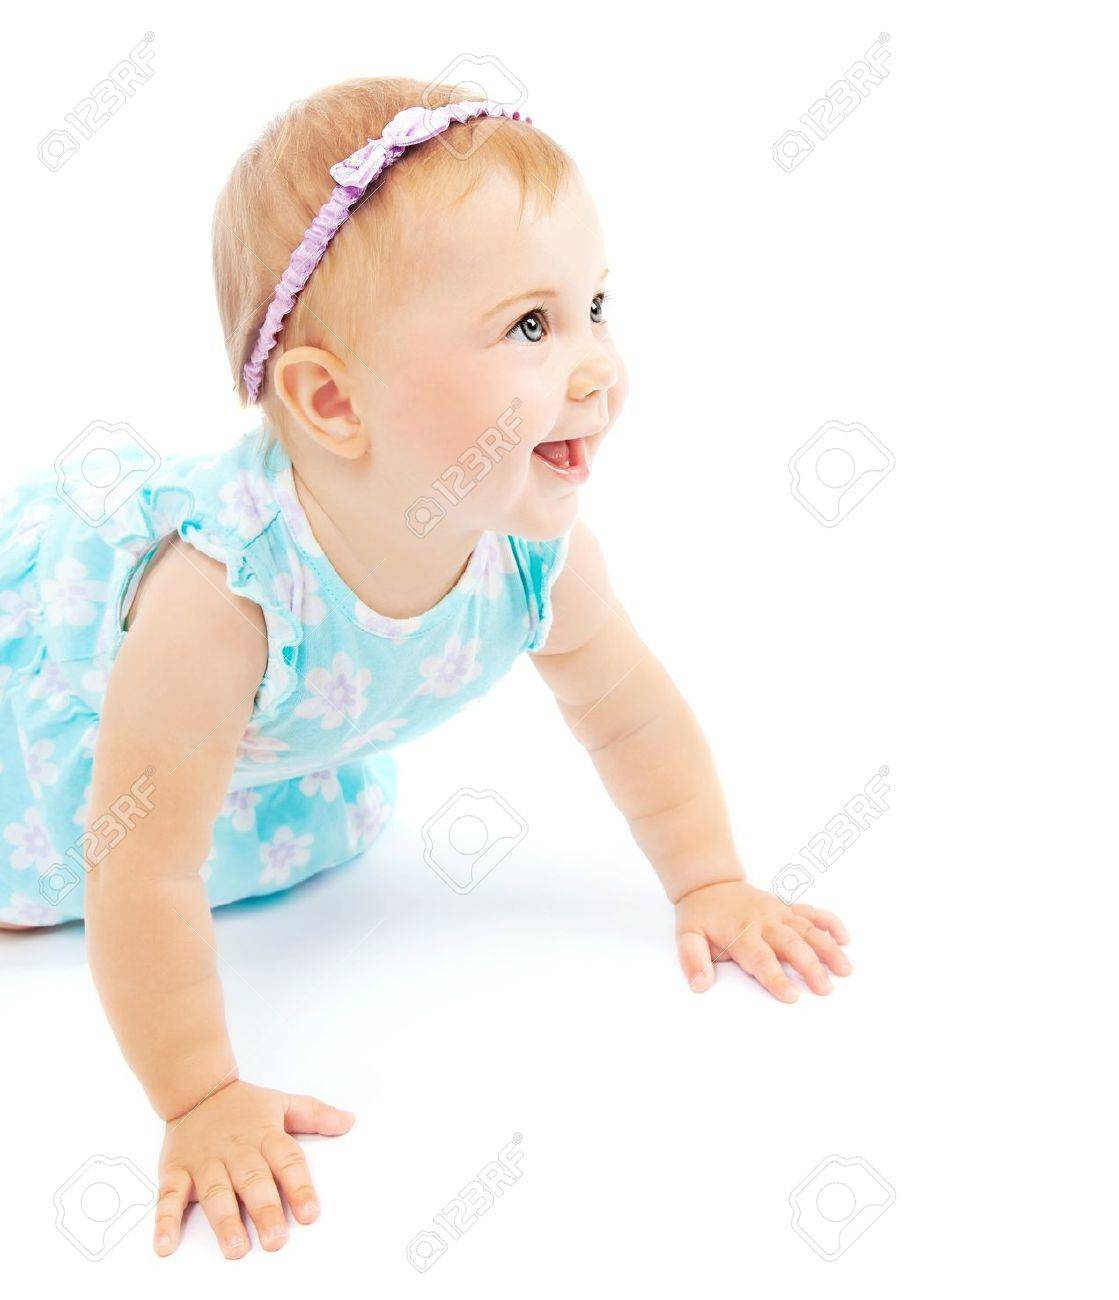 Adorable little baby girl laughing, crawling and playing at studio, isolated on white background Stock Photo - 9996945